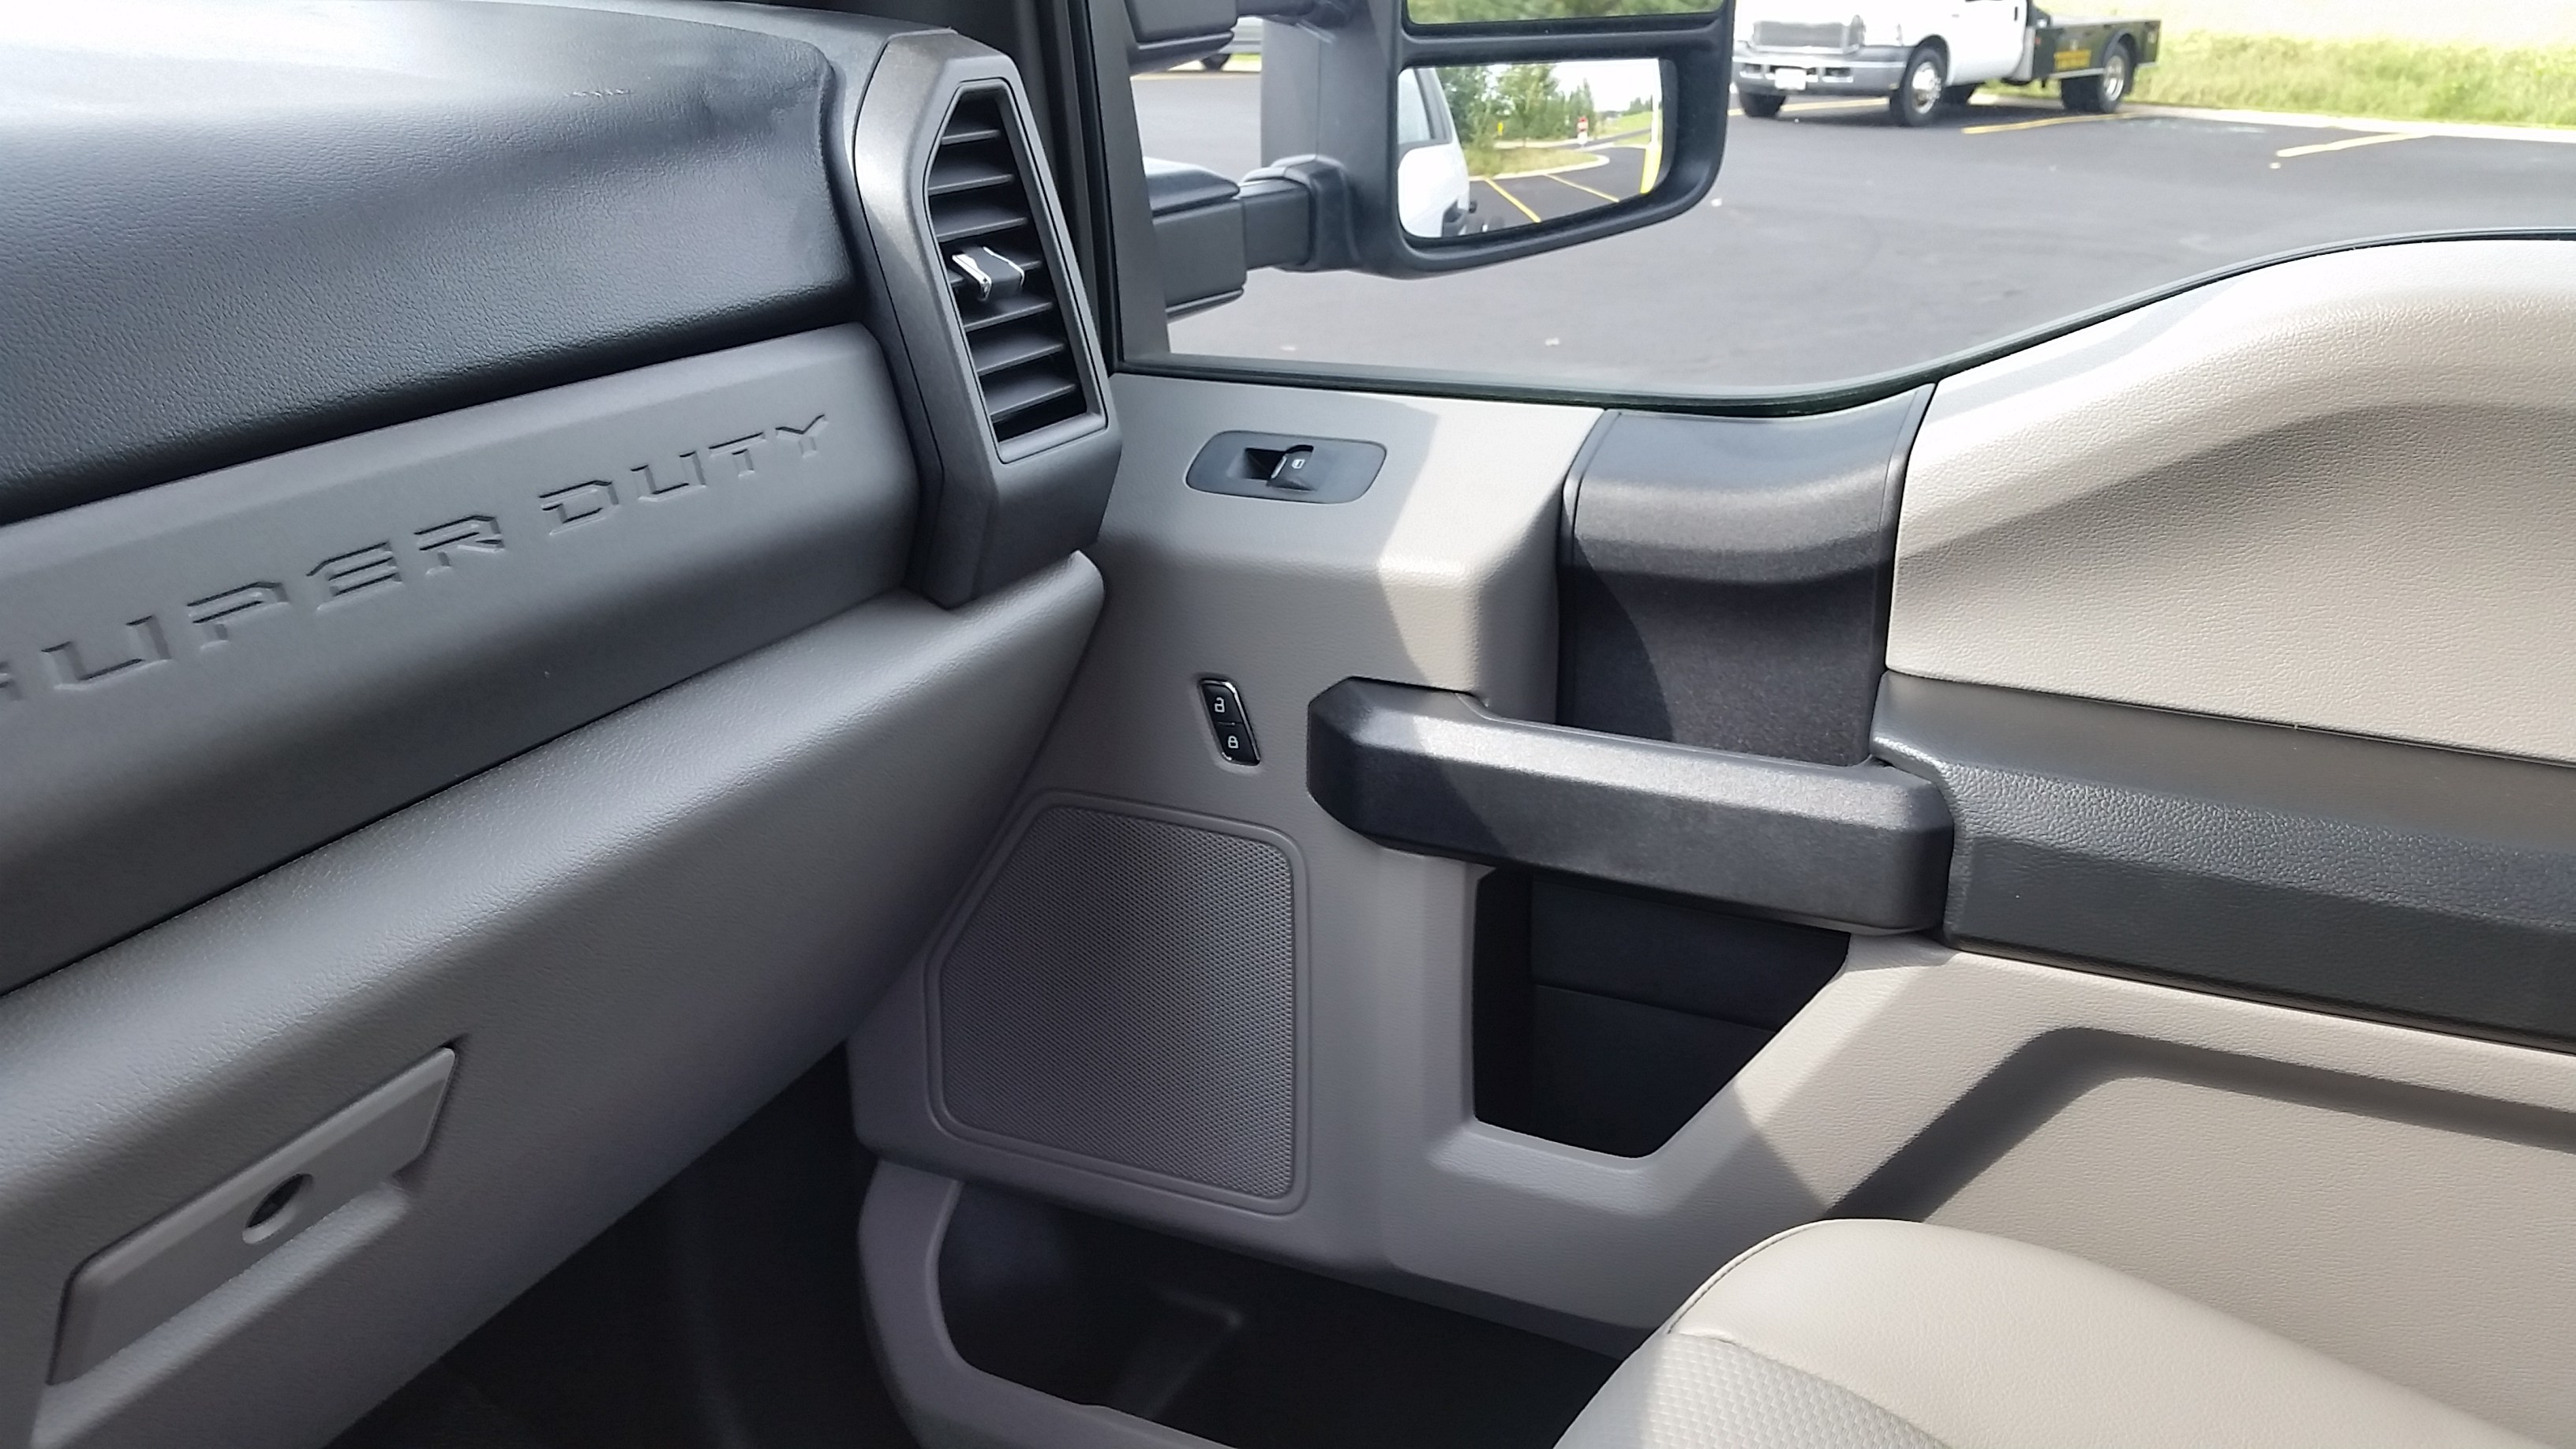 2018 F-550 Regular Cab DRW 4x4,  Cab Chassis #21840 - photo 20